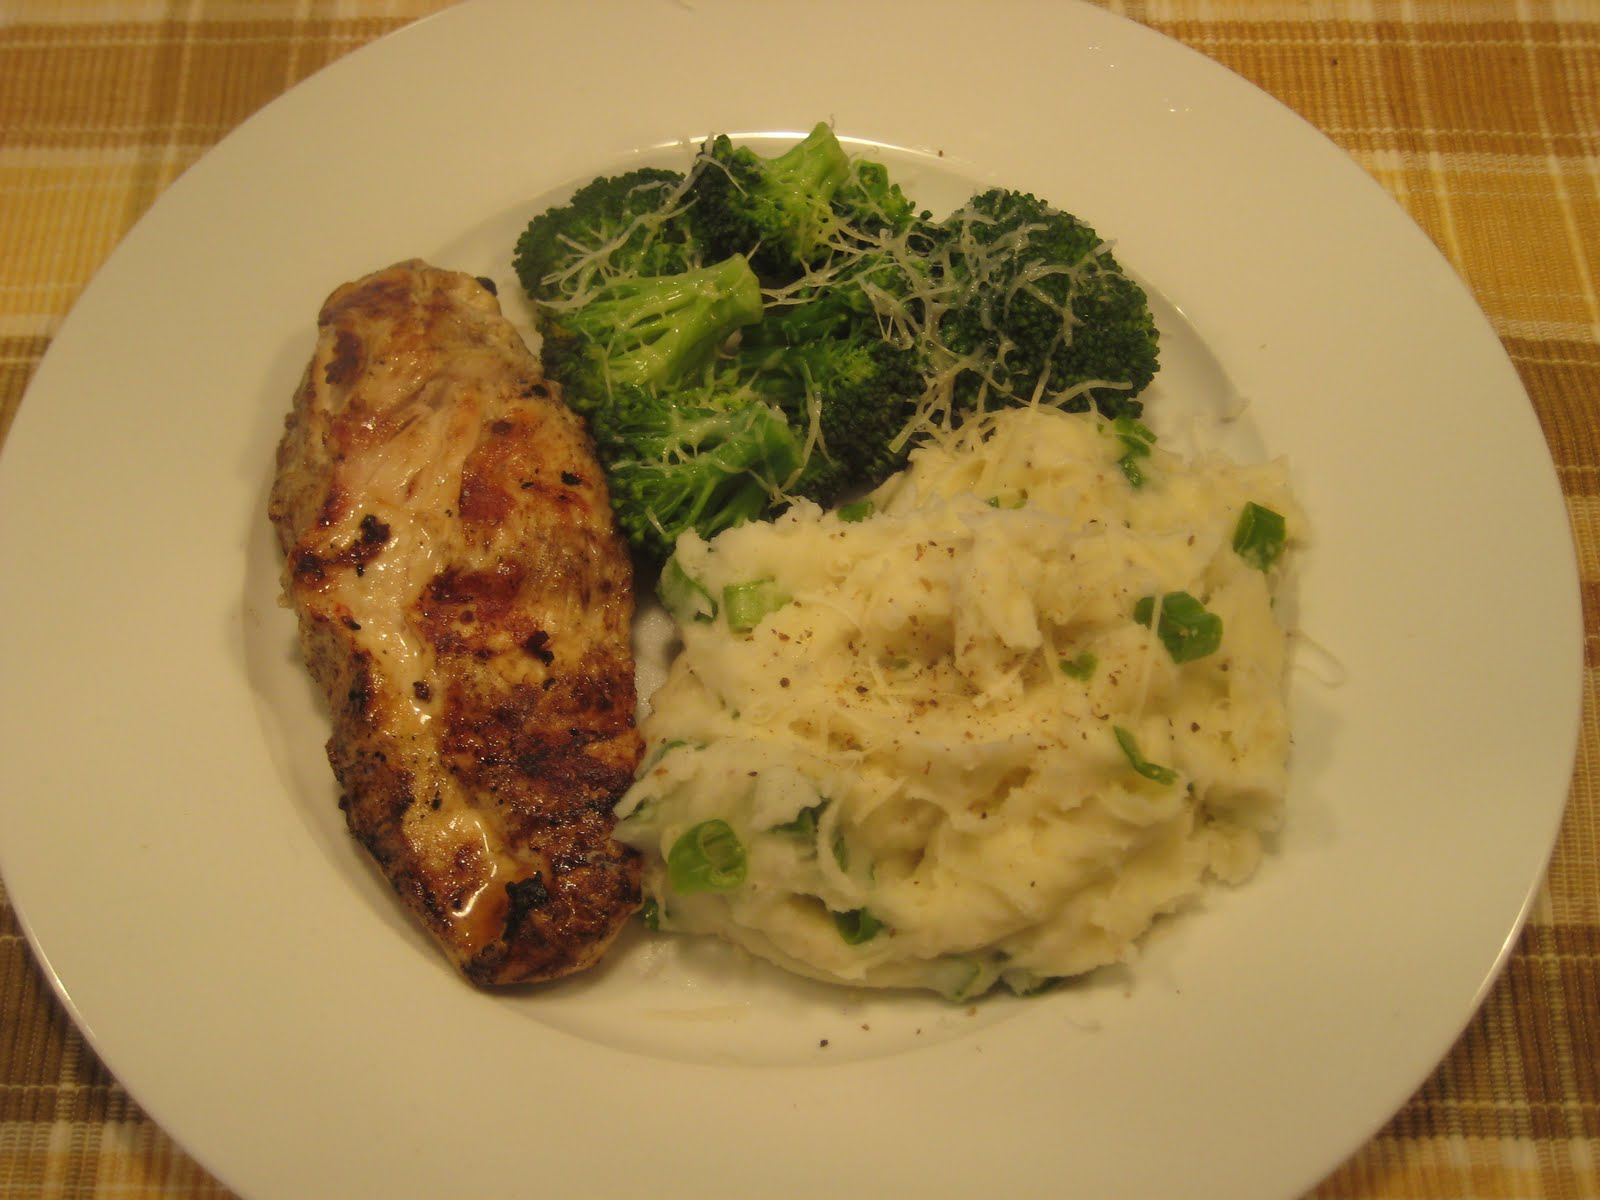 grilled-chicken-breast-with-mashed-potatoes